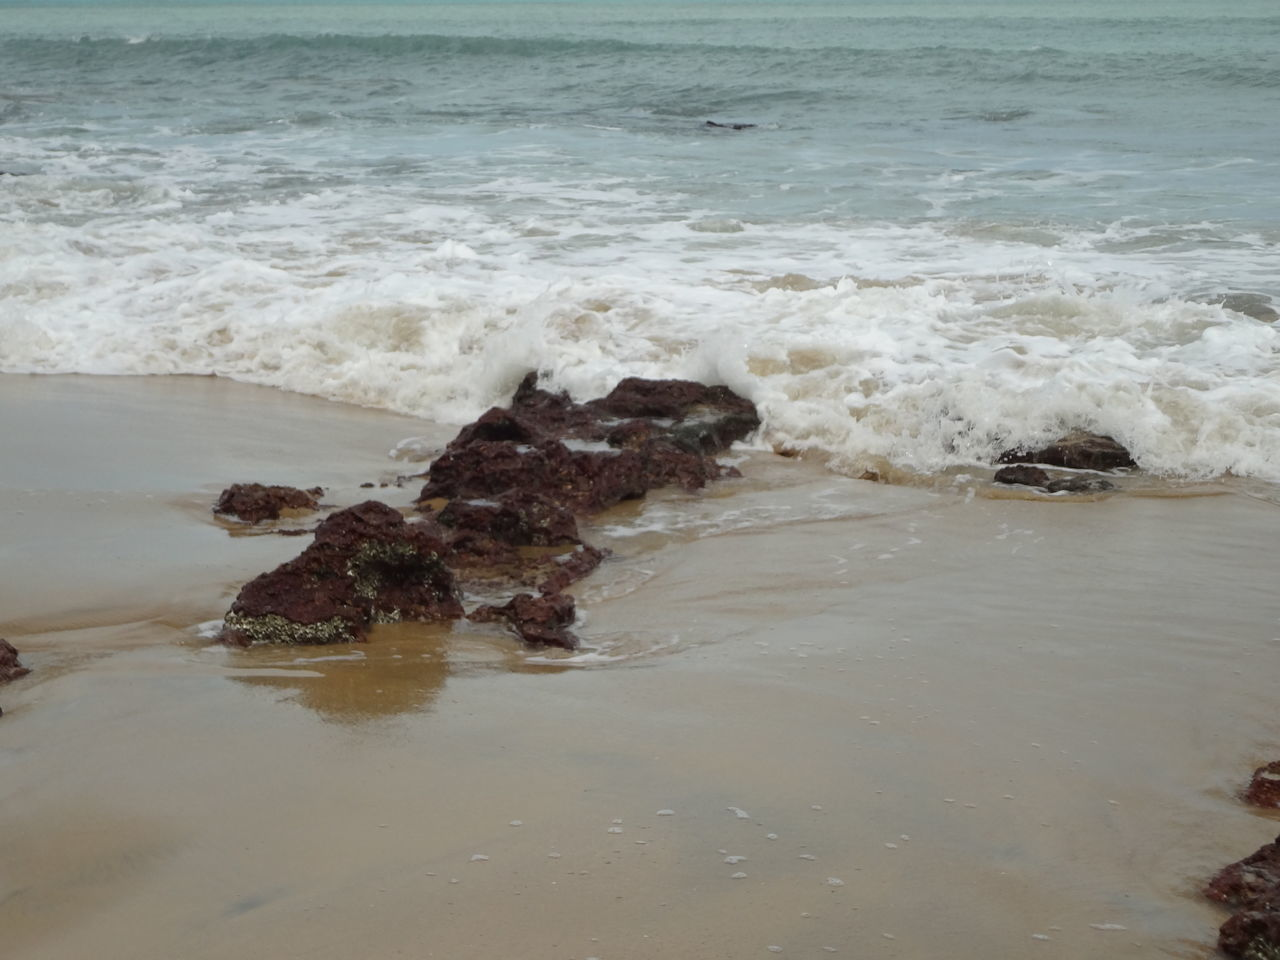 sea, water, nature, wave, beauty in nature, no people, rock - object, beach, outdoors, day, sand, scenics